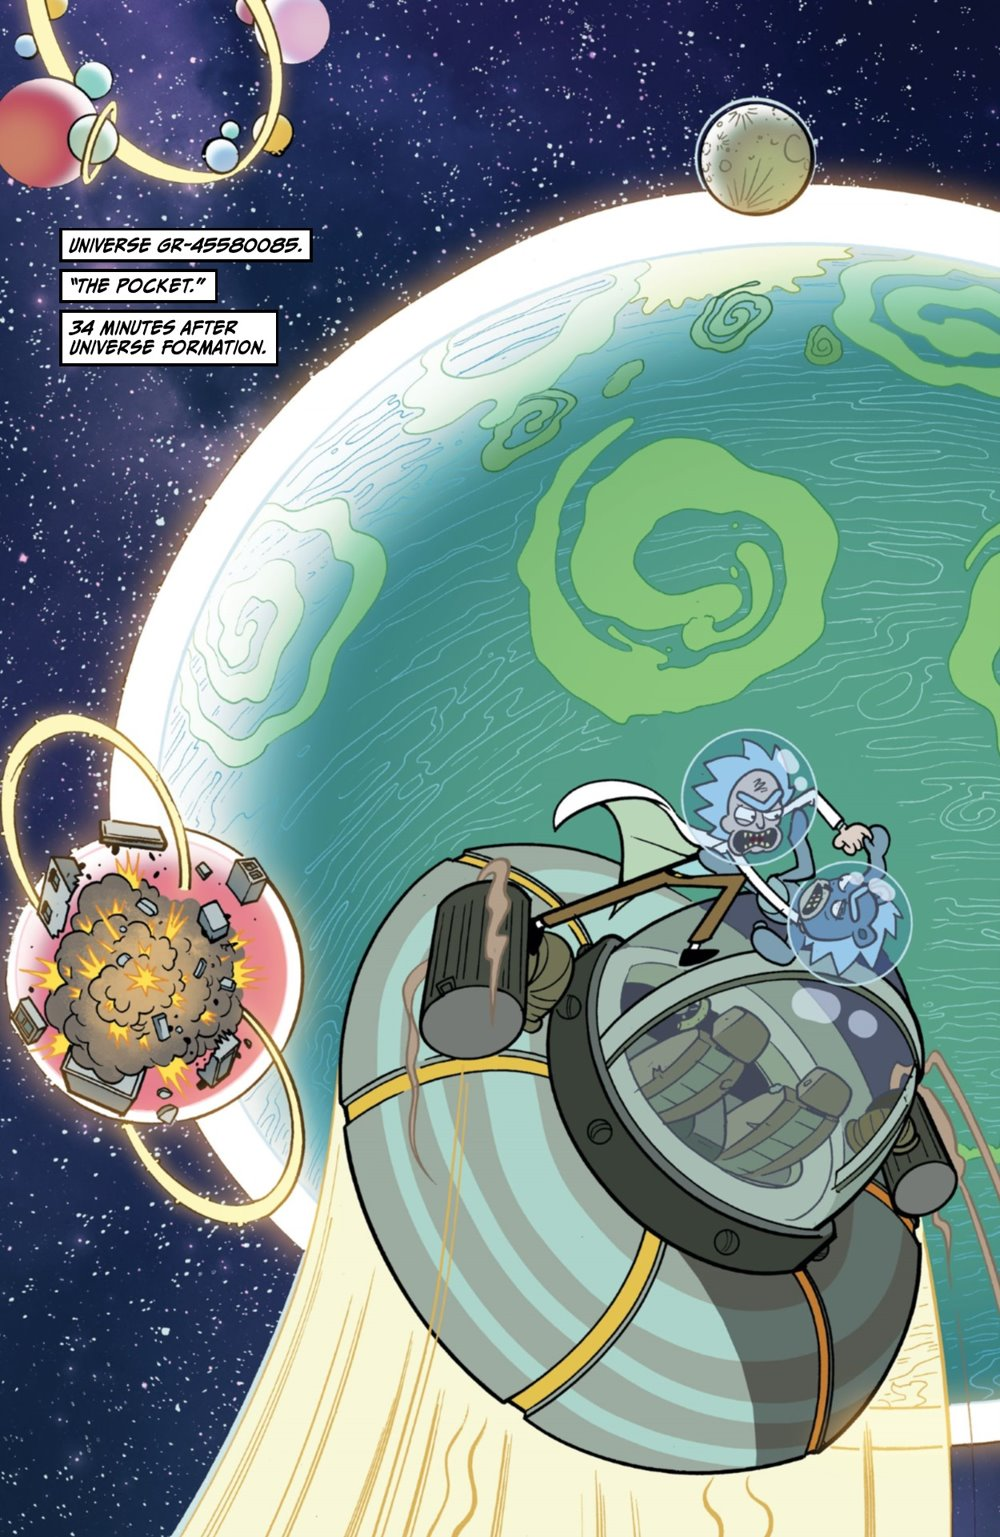 RICKMORTY-WORLDSAPART-2-REFERENCE-04 ComicList Previews: RICK AND MORTY WORLDS APART #2